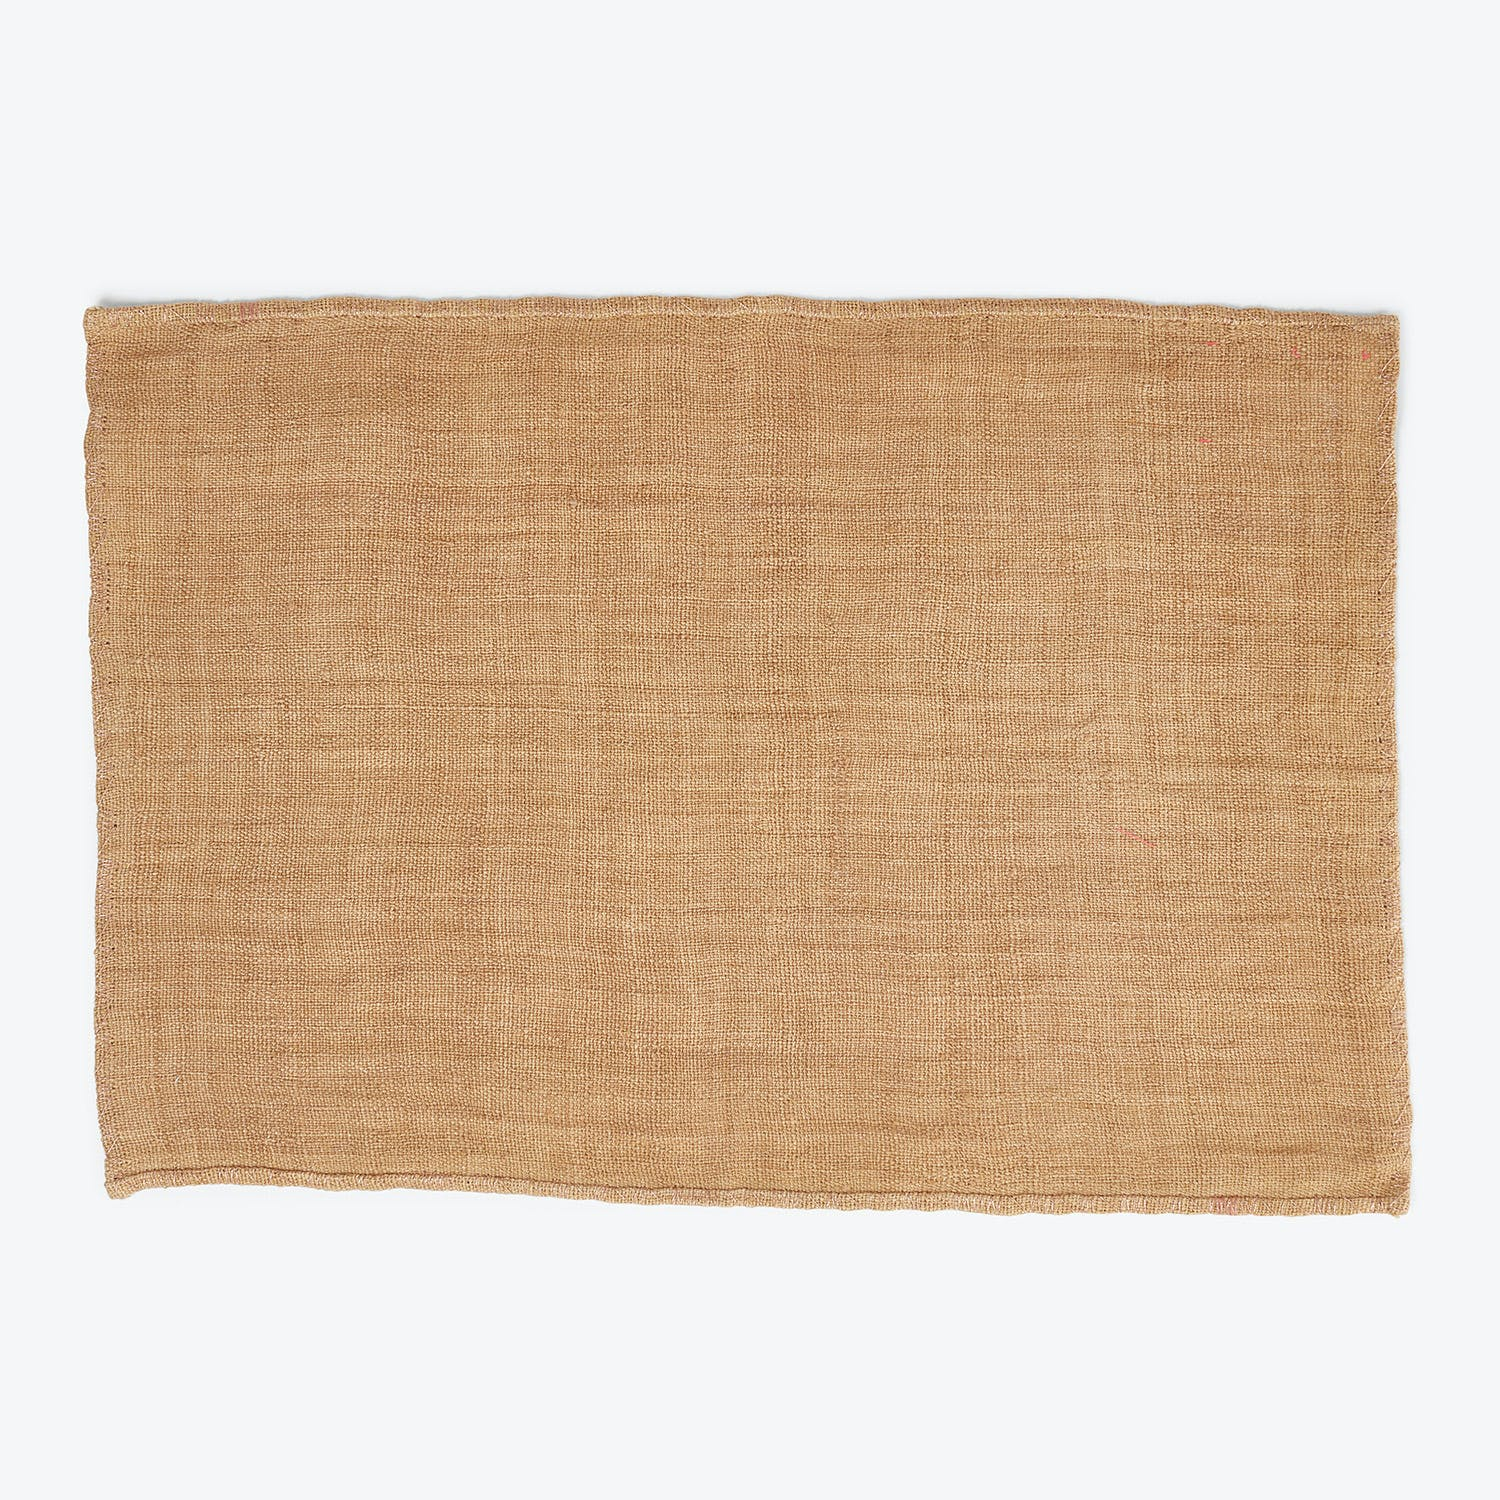 abcDNA Glo Placemat Ochre